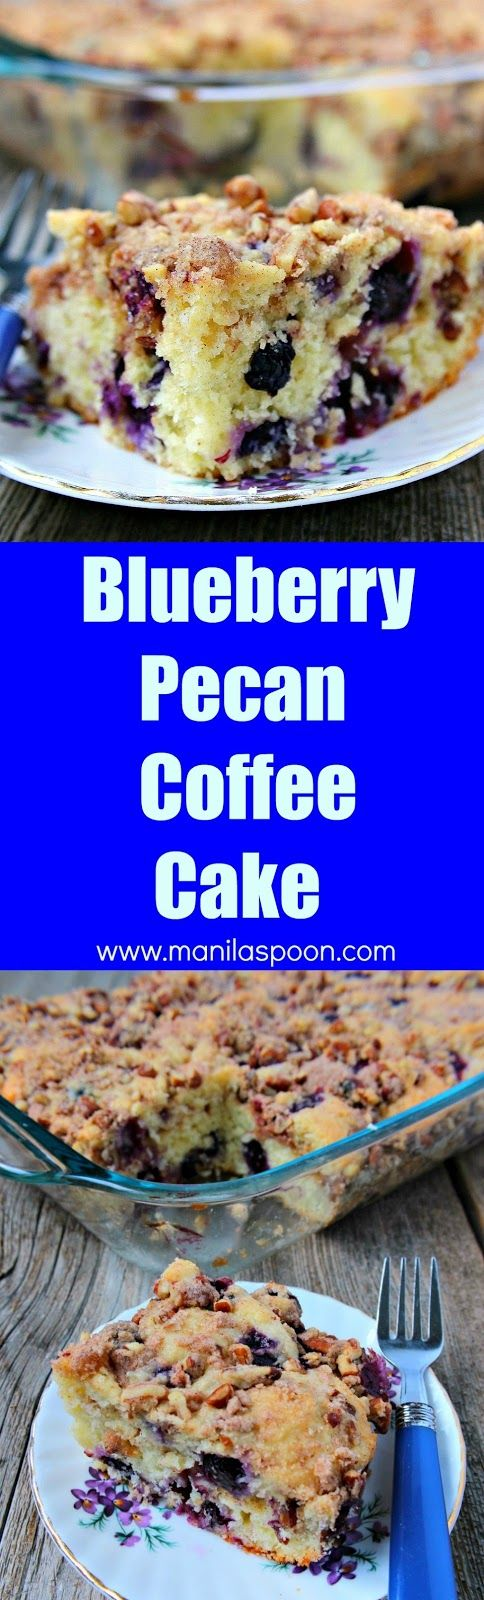 With juicy blueberries for extra sweetness and pecans for added crunch and flavor this is our ultimate breakfast and coffee cake. Perfect as dessert, too. | manilaspoon.com